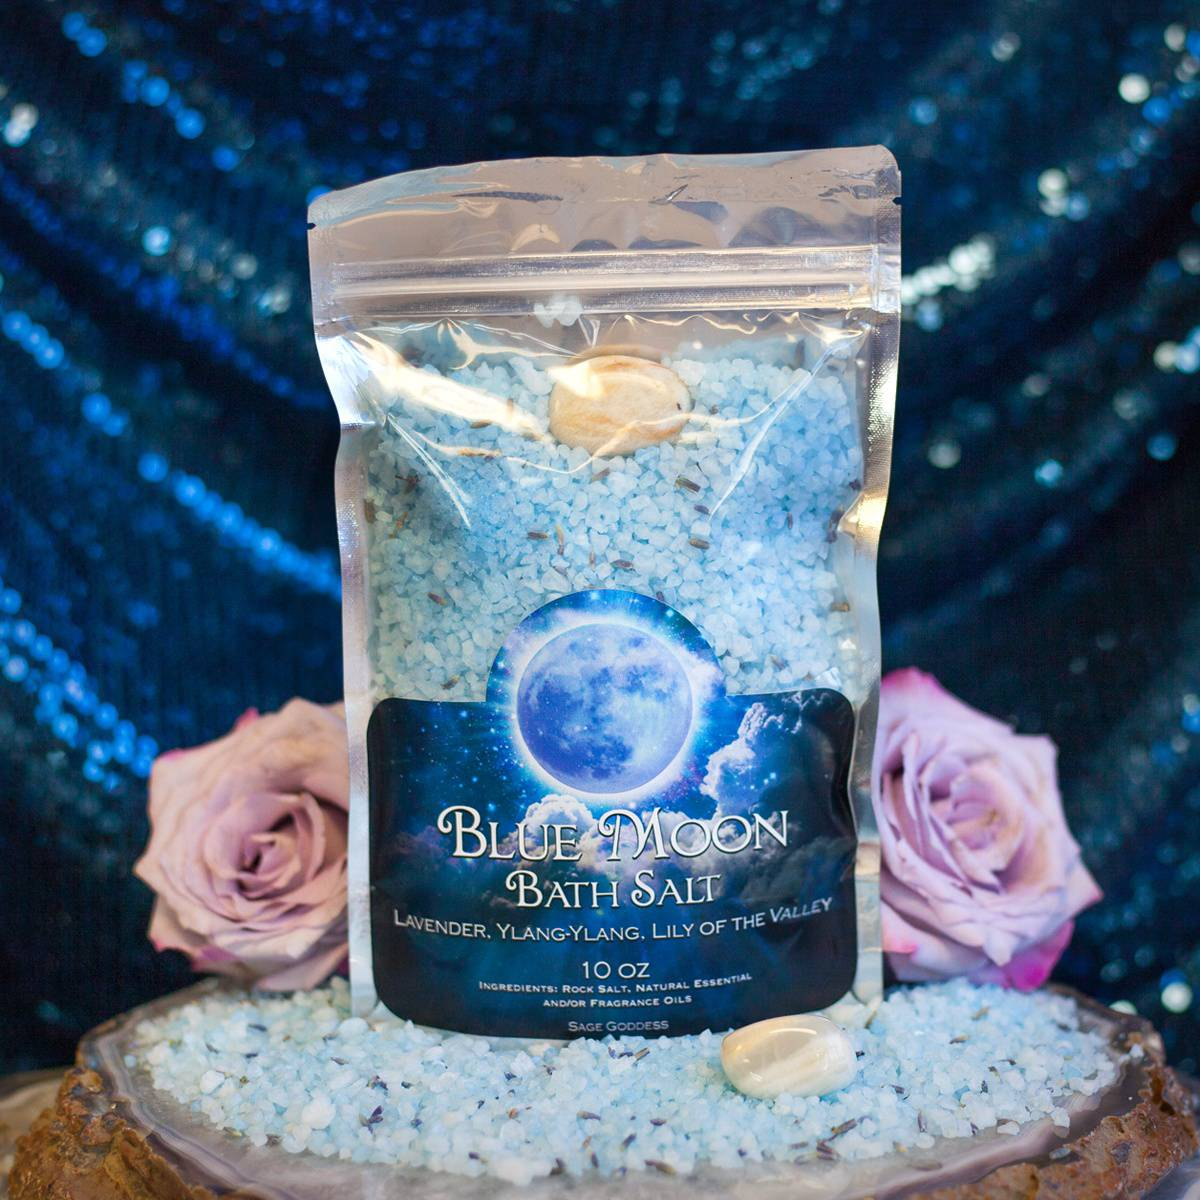 Blue Moon Bath Salt